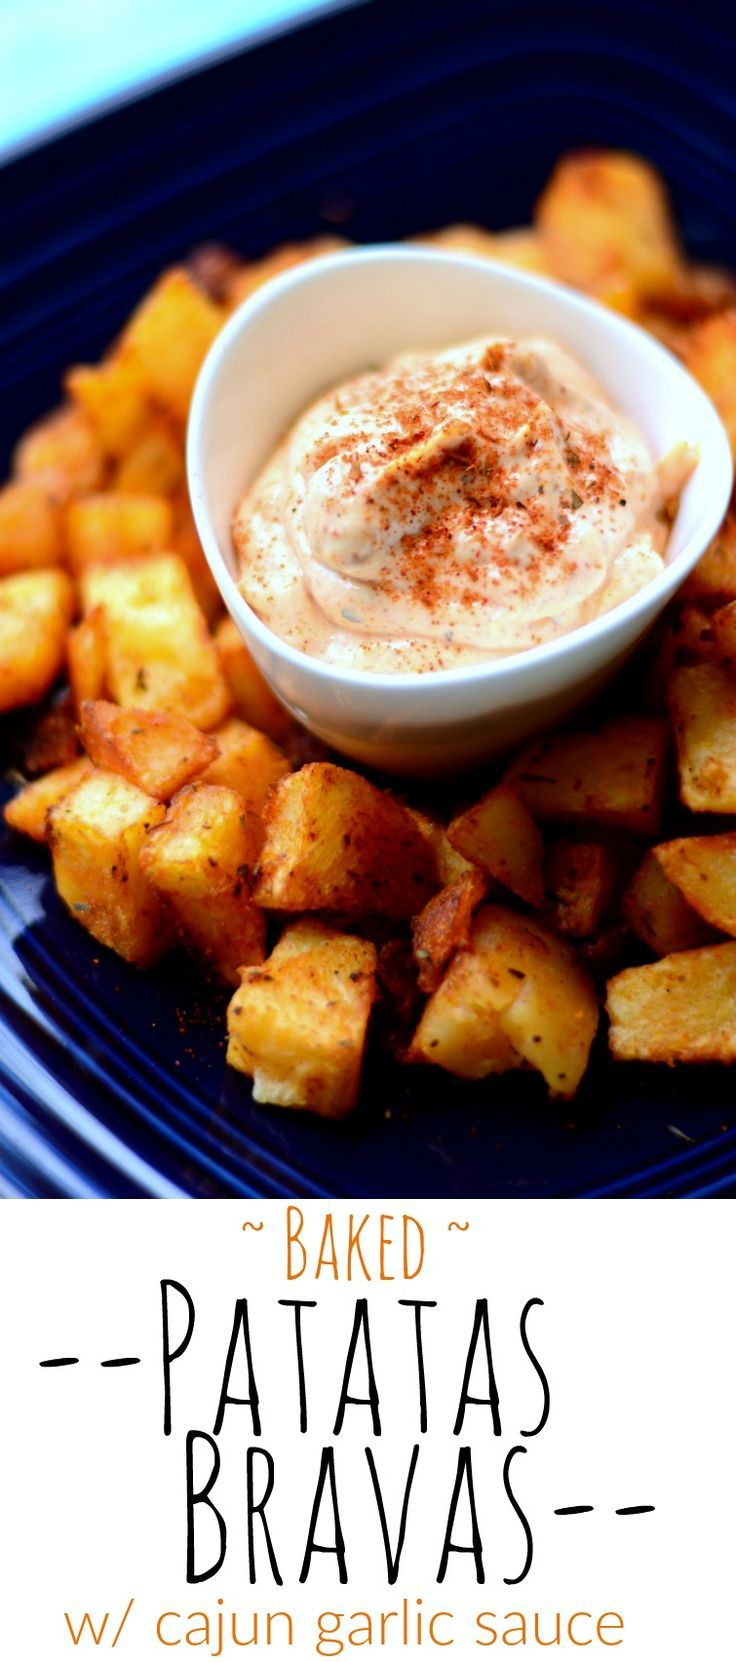 Celebrate National Potato Day and National Hot and Spicy Day with these gorgeously BAKED Patatas Bravas - the best and my favourite in any Spanish Tapas Menu!  Served with my own version of the Bravas sauce - garlic and cajun mayo - this < 30 minute appet